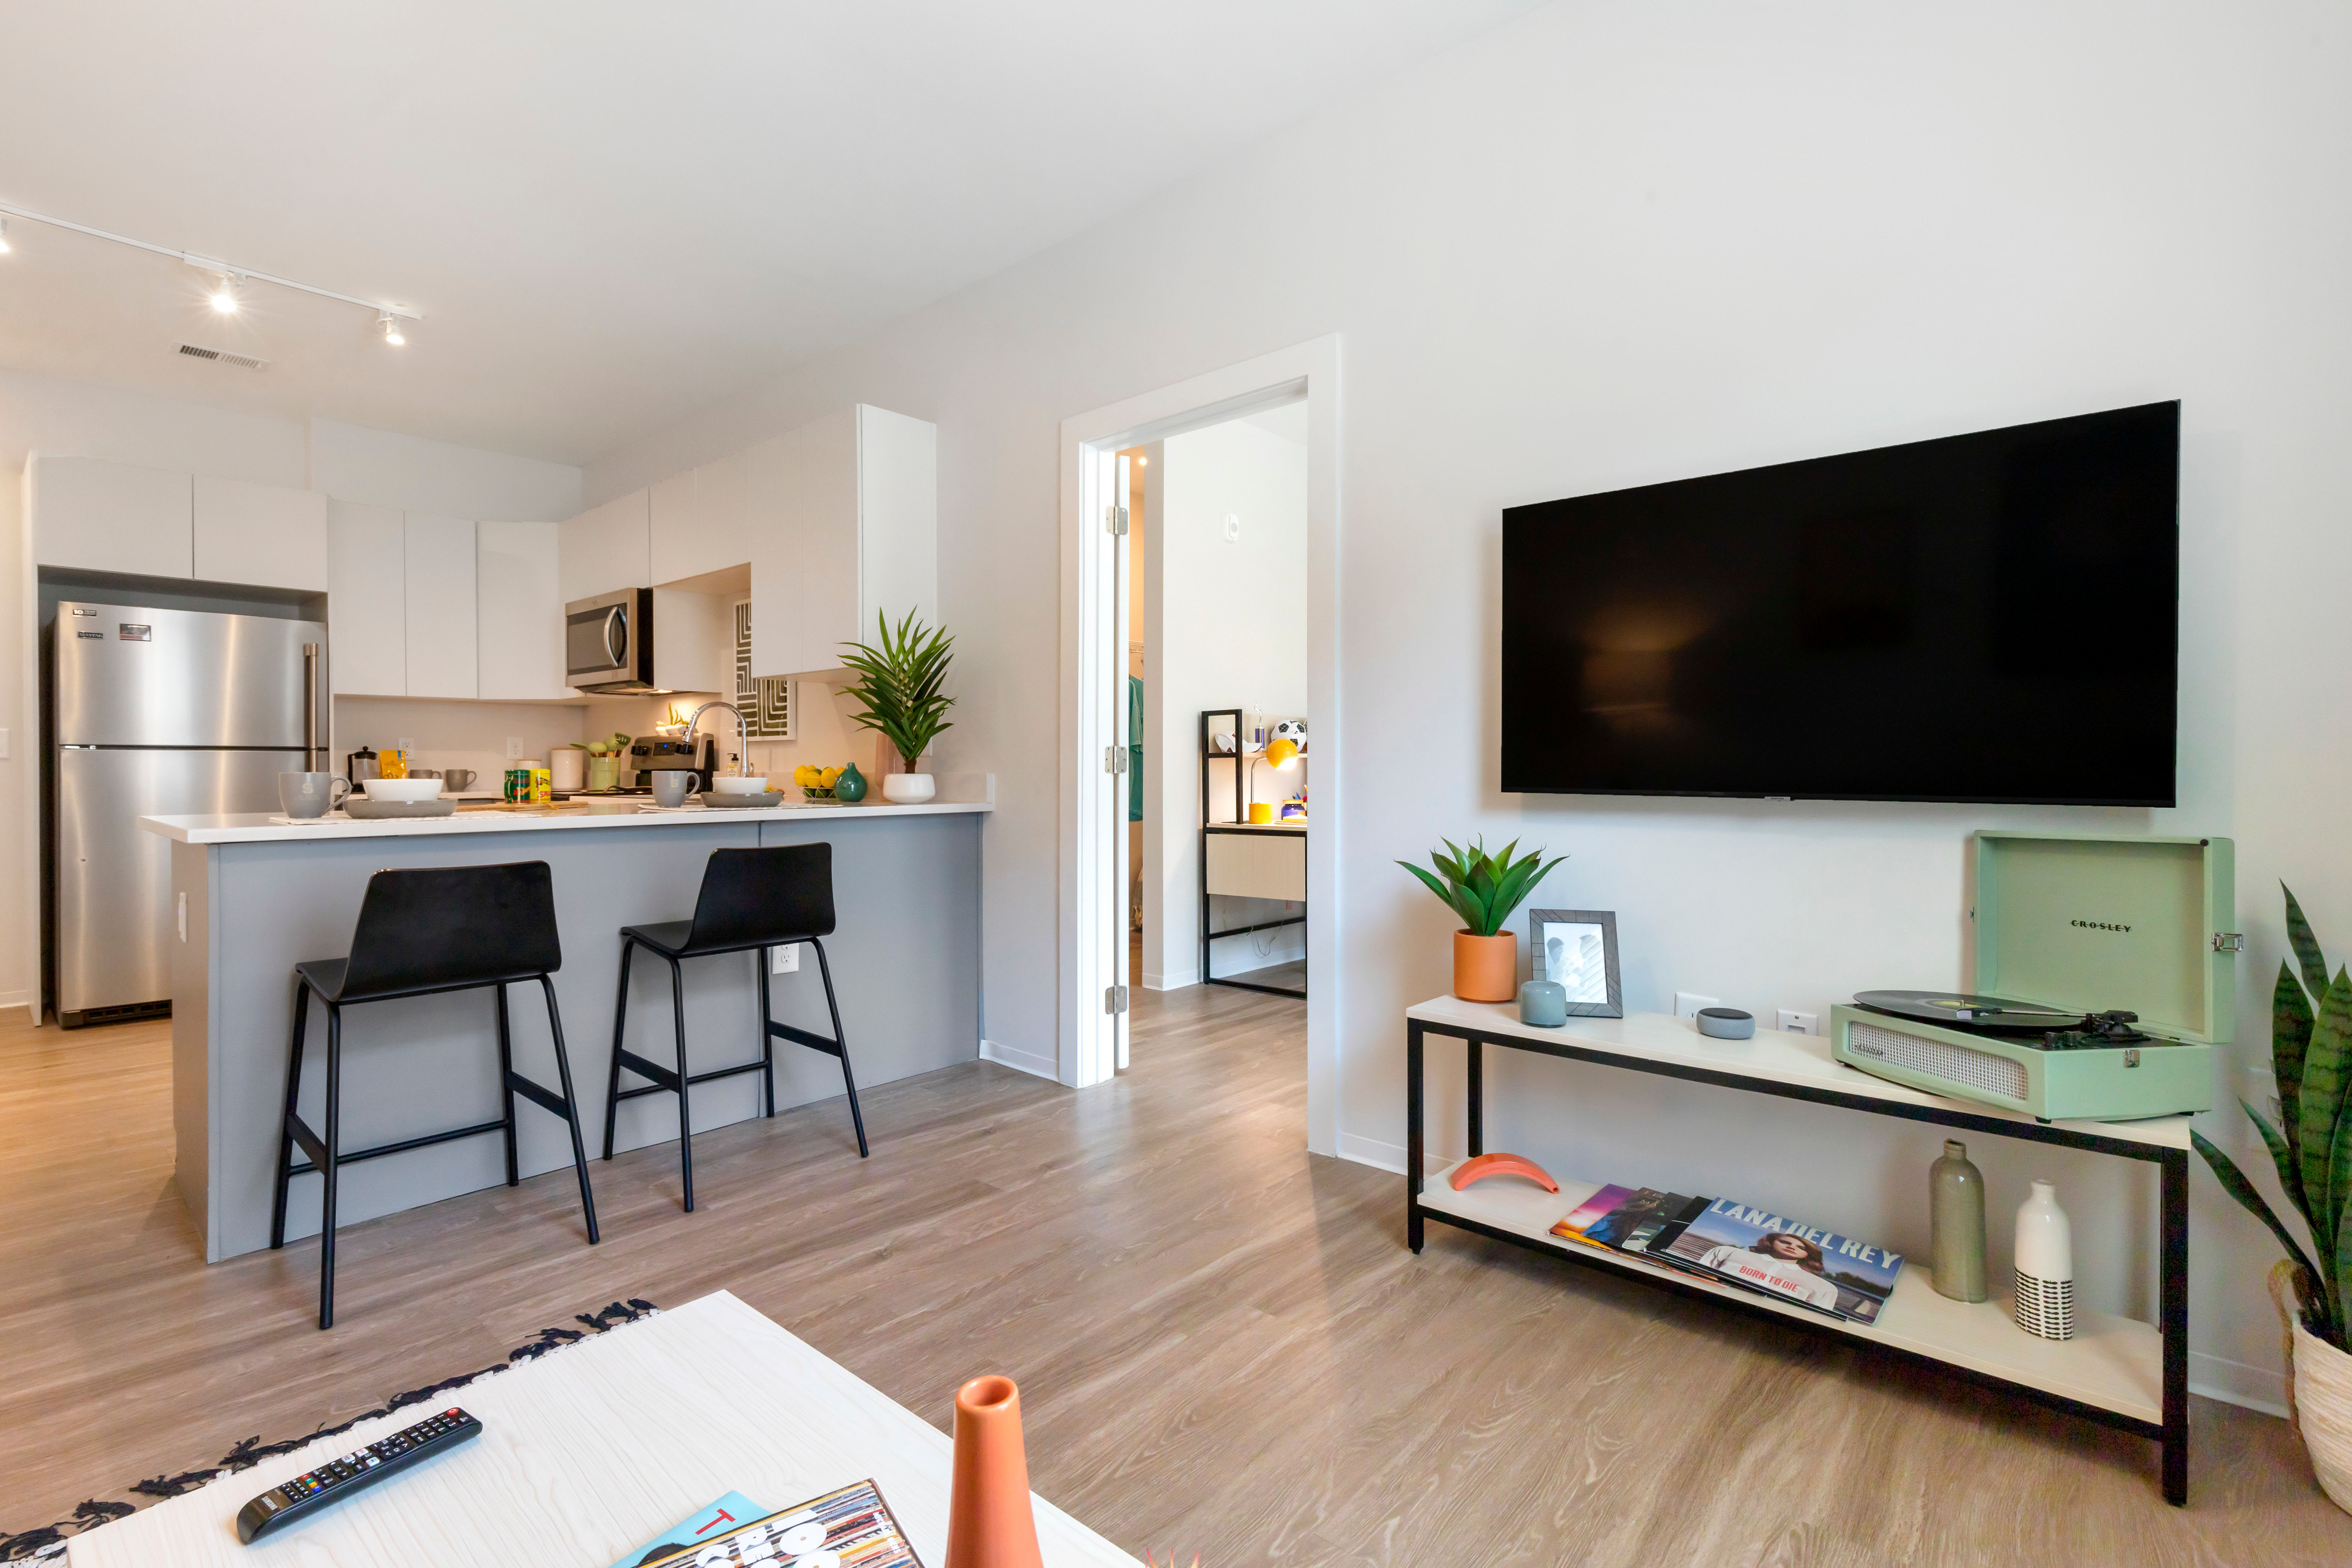 Fully furnished living room at UNCOMMON Raleigh in Raleigh, North Carolina